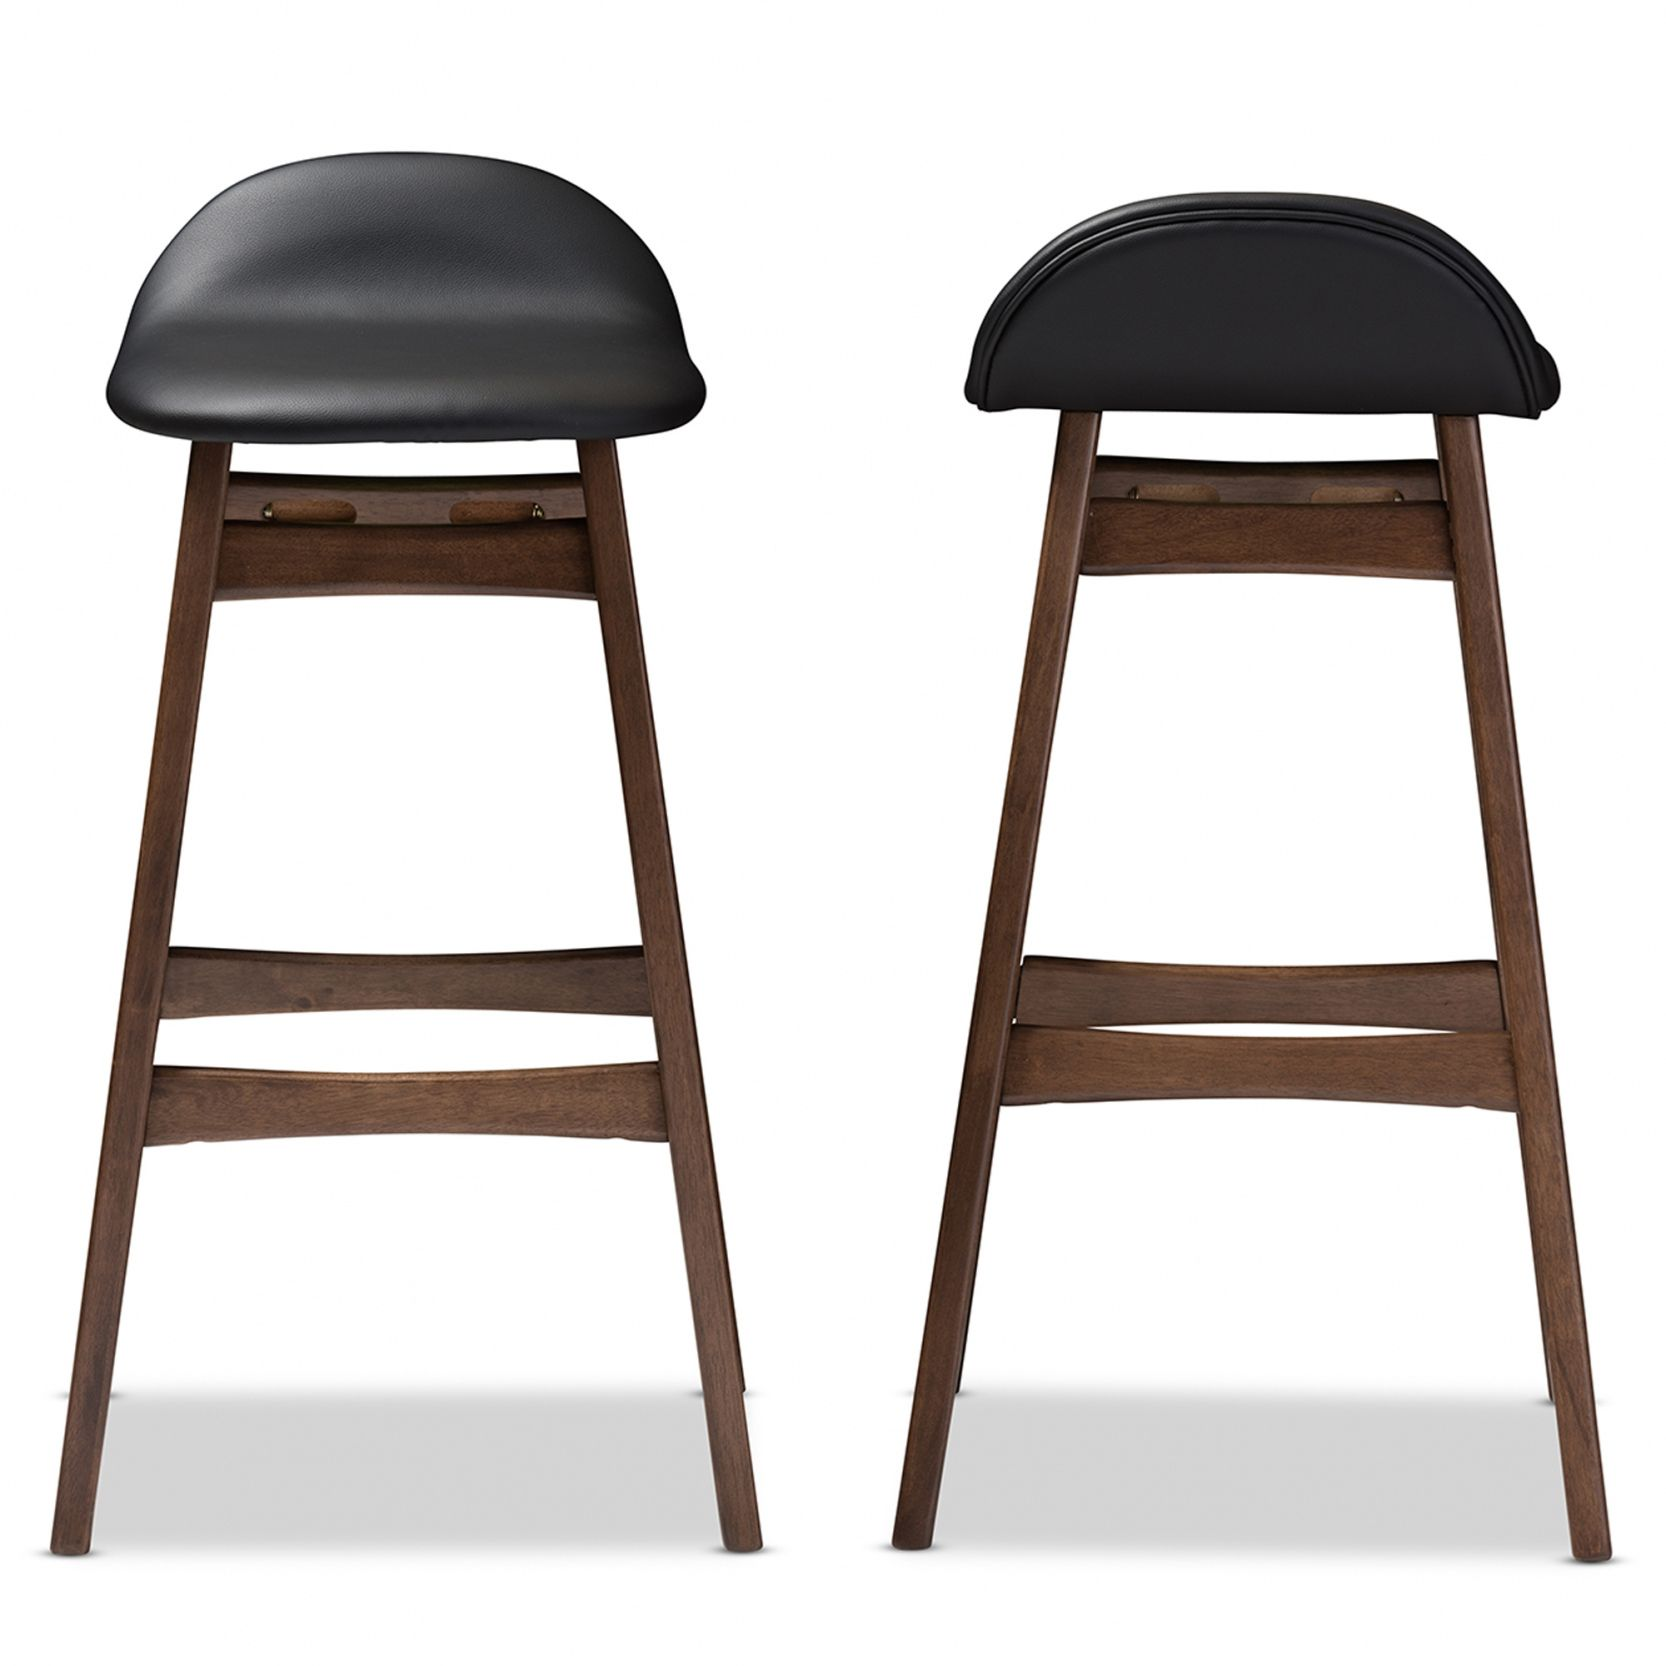 50 30 Inch Leather Bar Stools Contemporary Modern Furniture